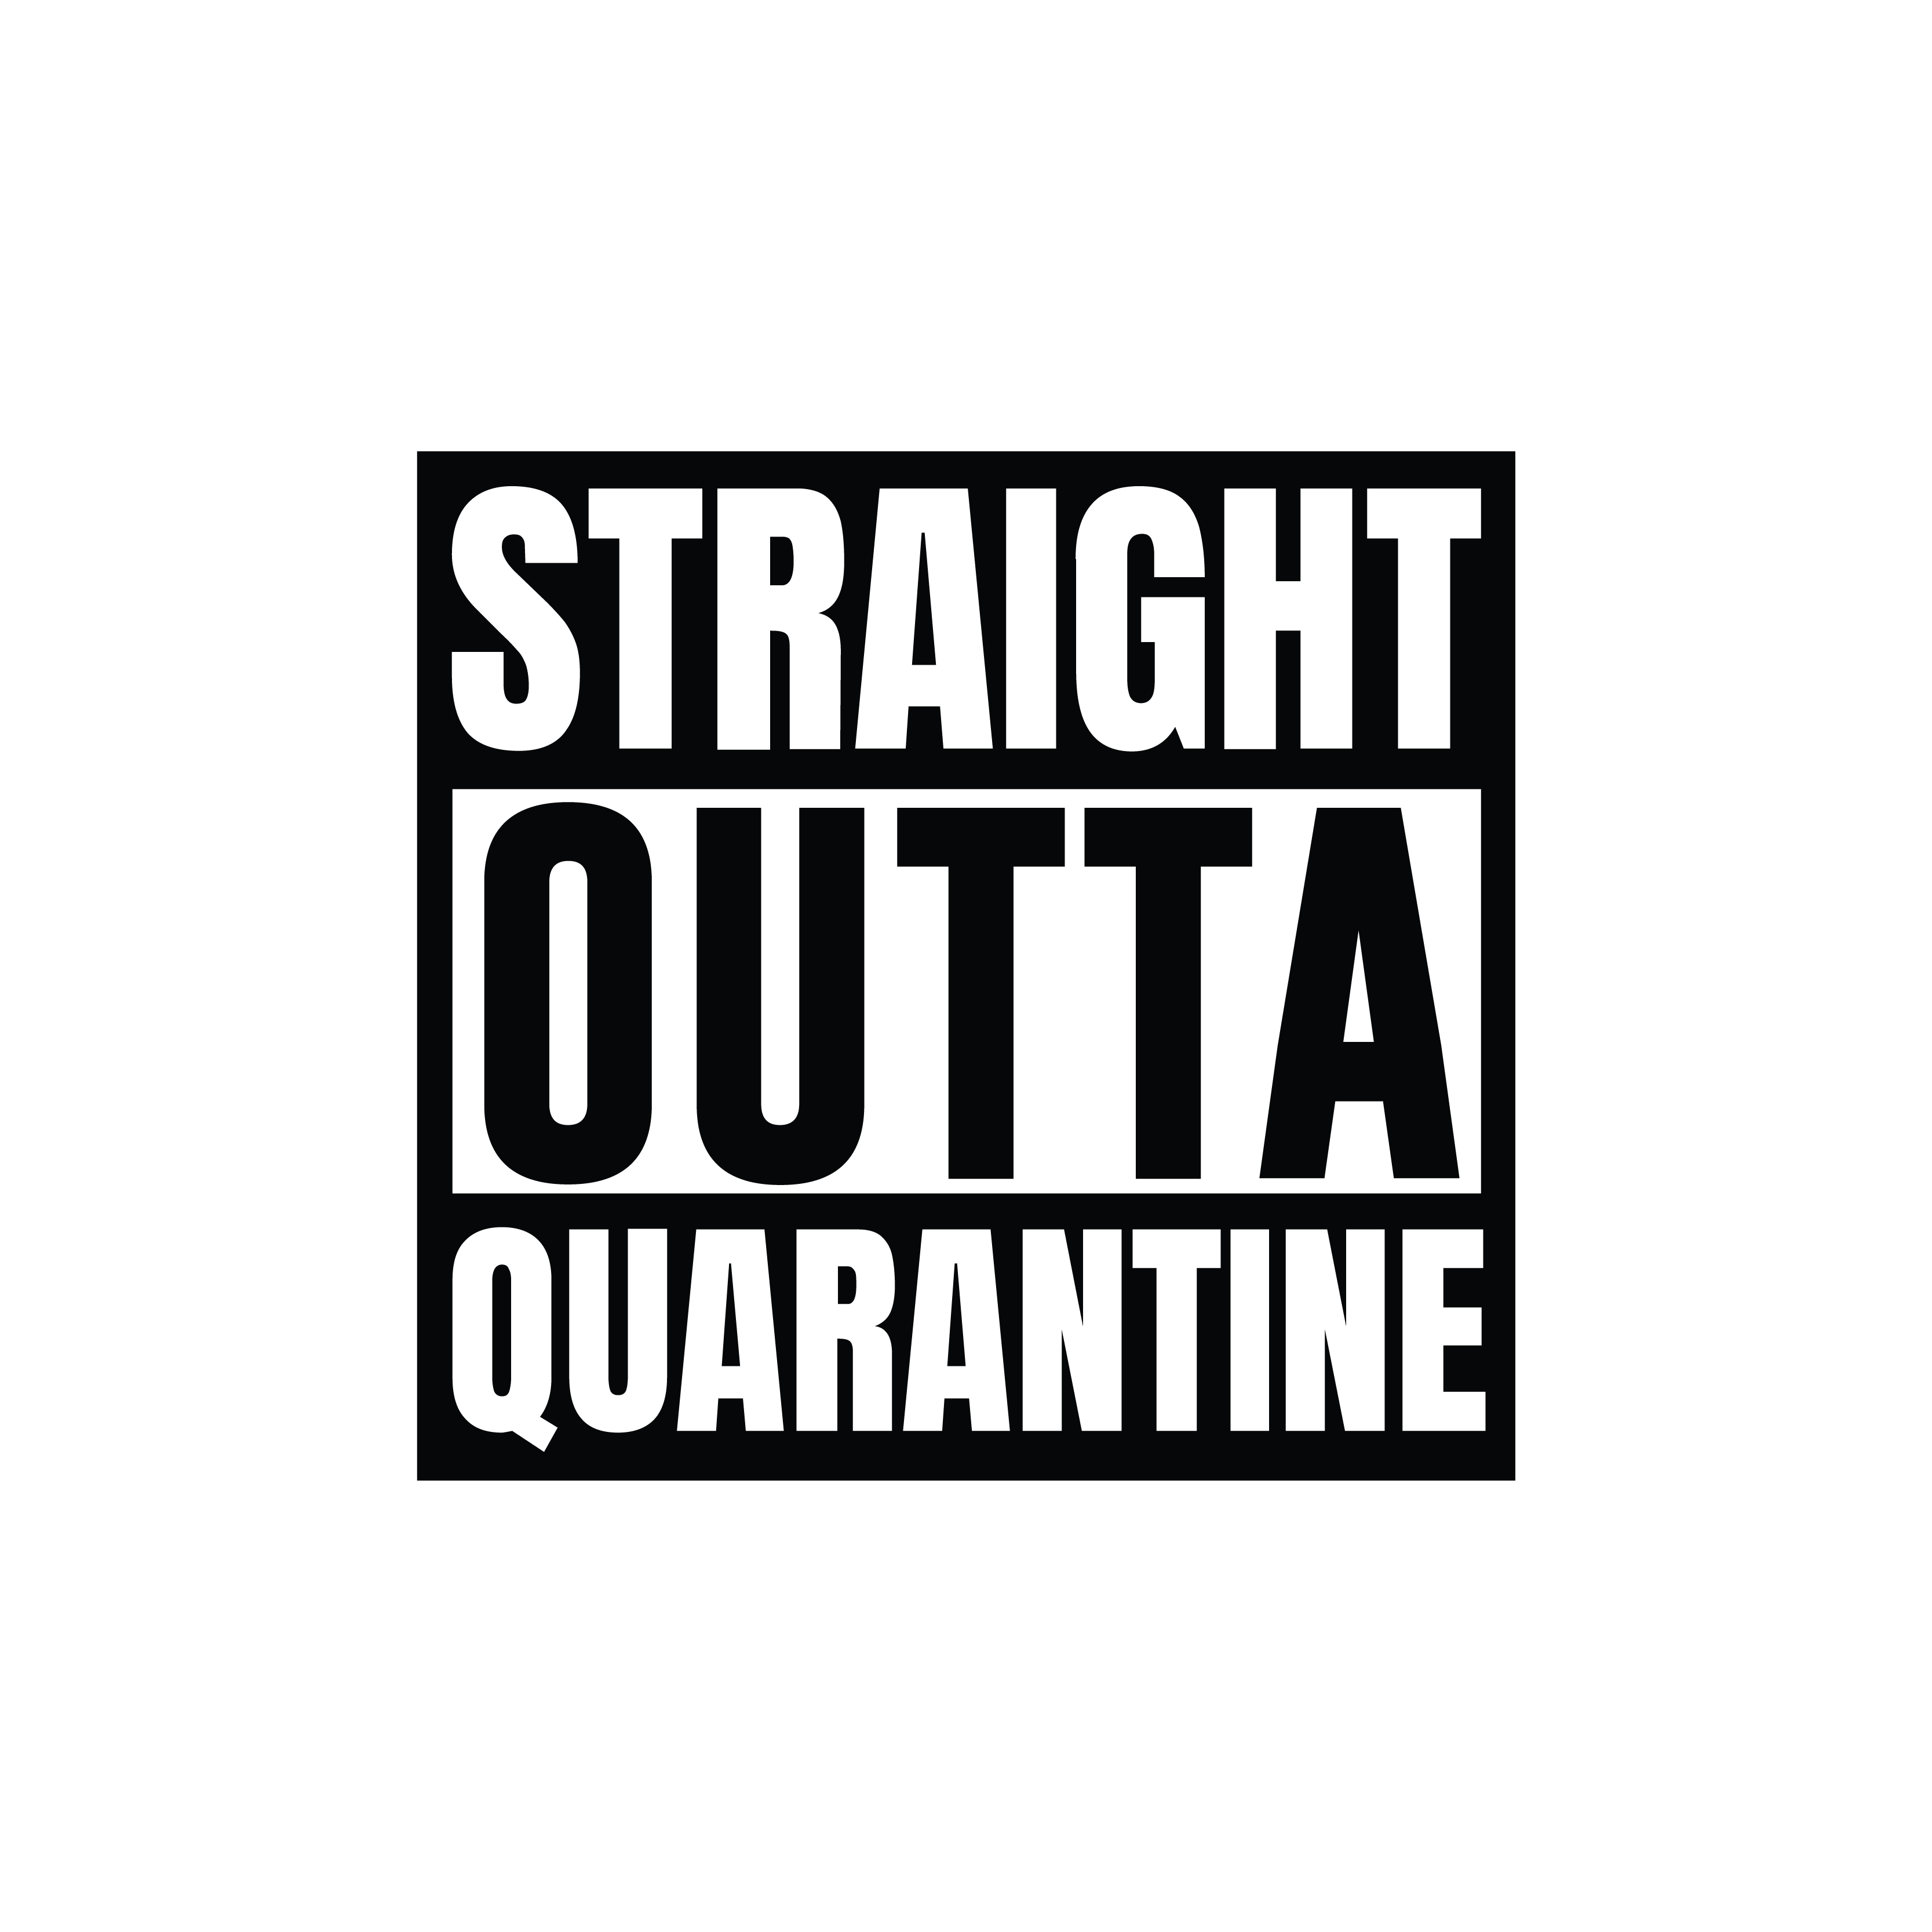 Quarantaine design 9 - Straight Outta Quarantine